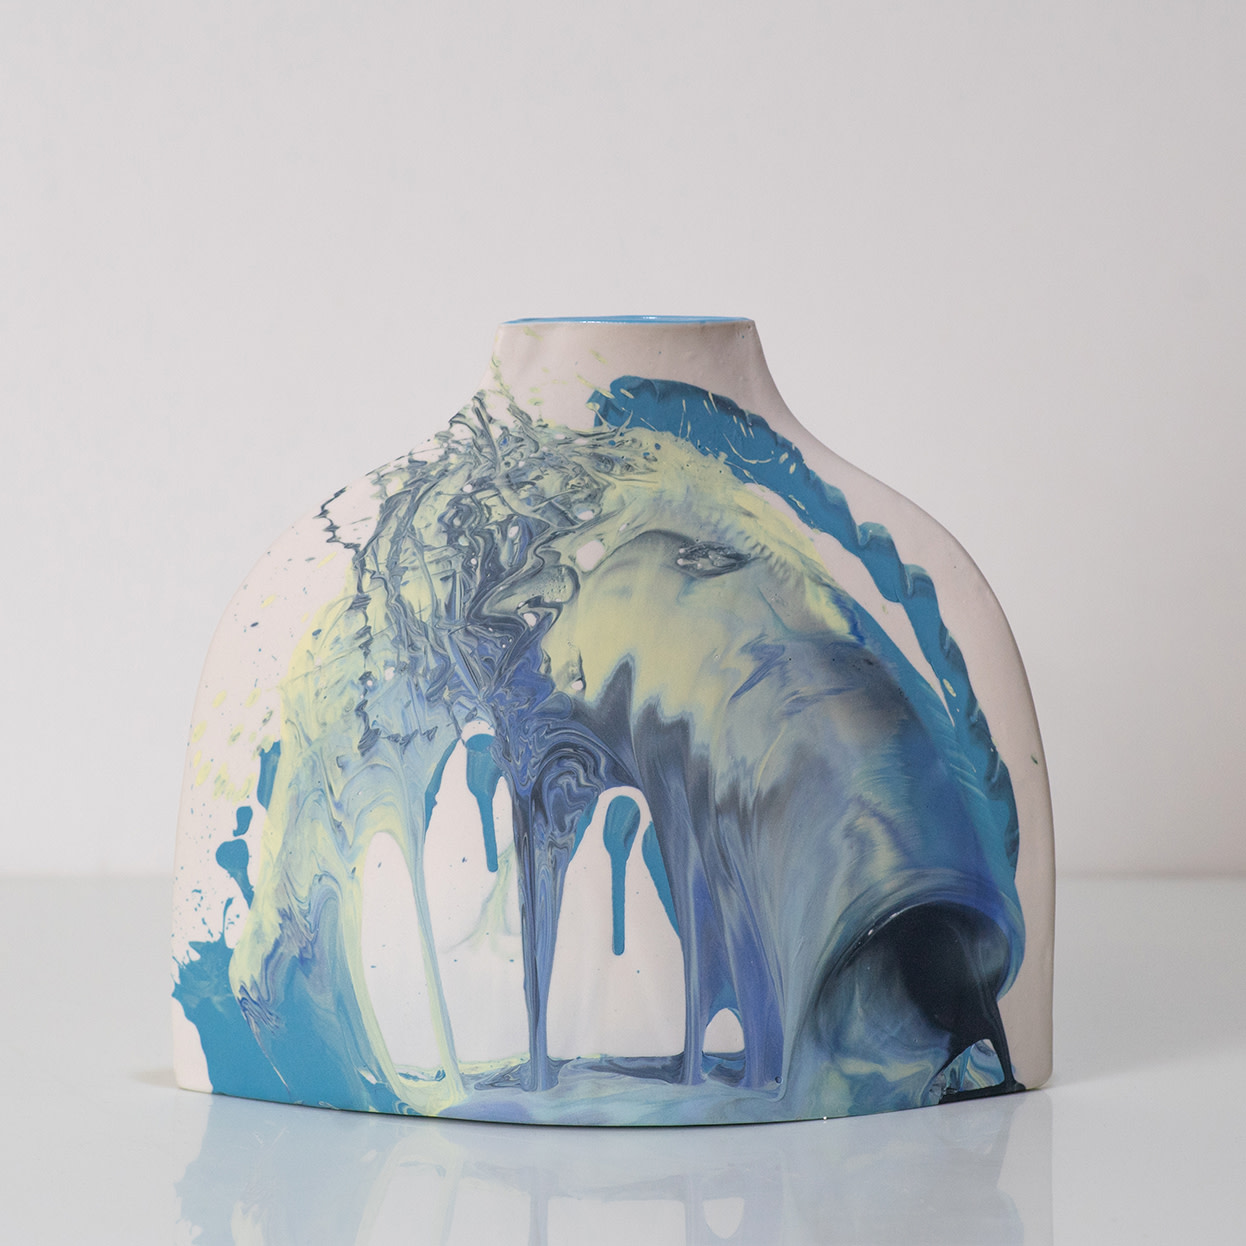 "<span class=""link fancybox-details-link""><a href=""/artists/219-james-pegg/works/6096-james-pegg-shoulder-vase-2019/"">View Detail Page</a></span><div class=""artist""><strong>James Pegg</strong></div> <div class=""title""><em>Shoulder Vase</em>, 2019</div> <div class=""medium"">action-cast stained porcelain with glazed interior<br />  (in collaboration with Lucia Fraser)</div> <div class=""dimensions"">h 20 cm x w 17.5 cm</div><div class=""copyright_line"">OwnArt: £ 20.50 x 10 Months, 0% APR </div>"